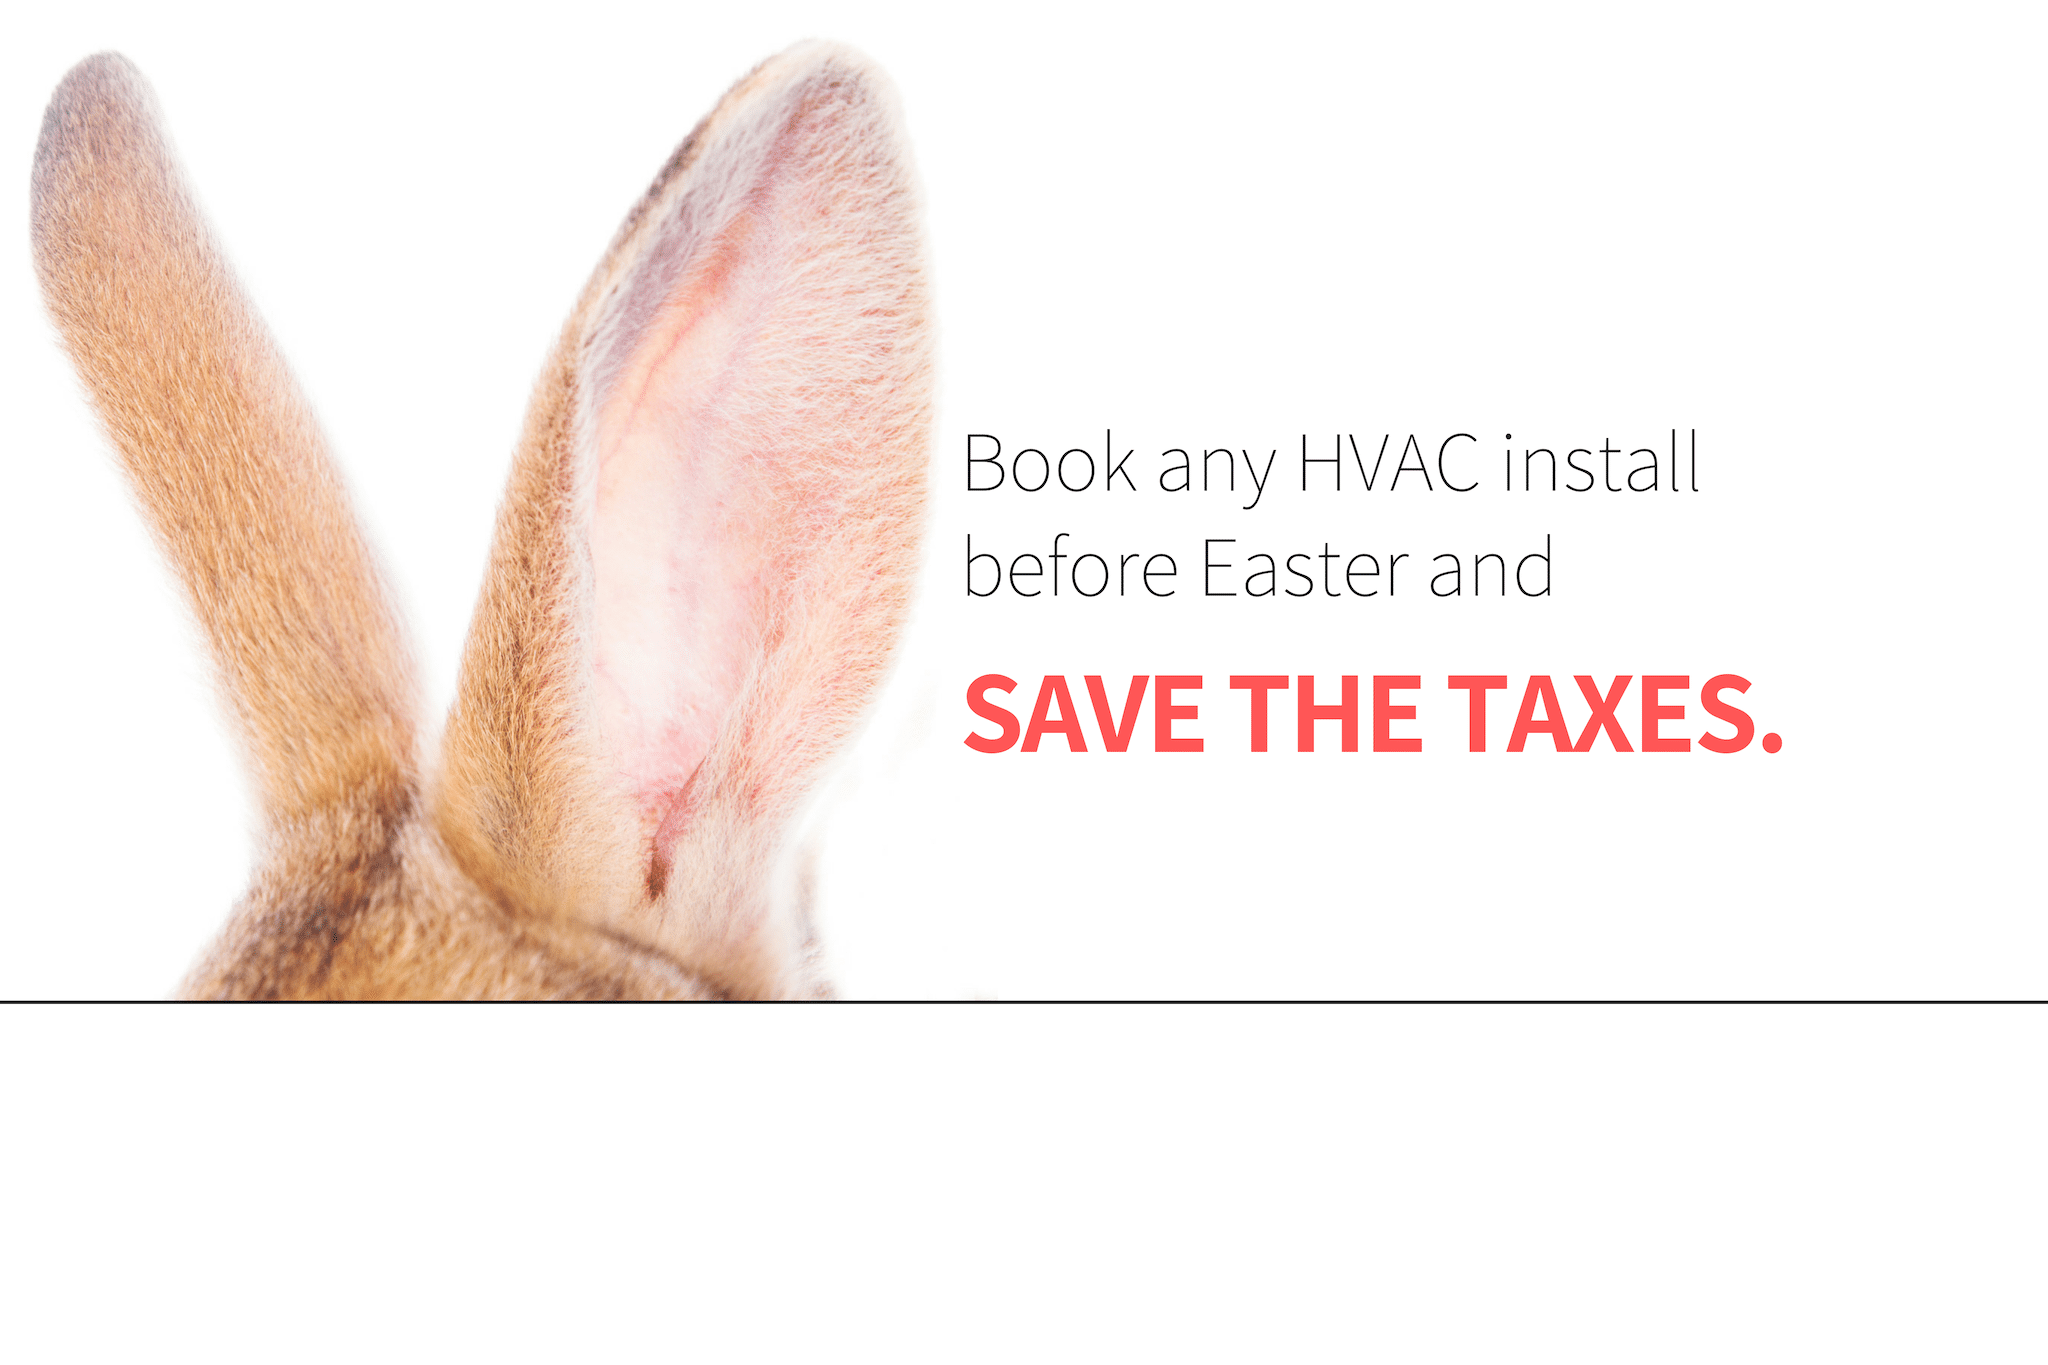 Save the taxes on any HVAC install before Easter 2019